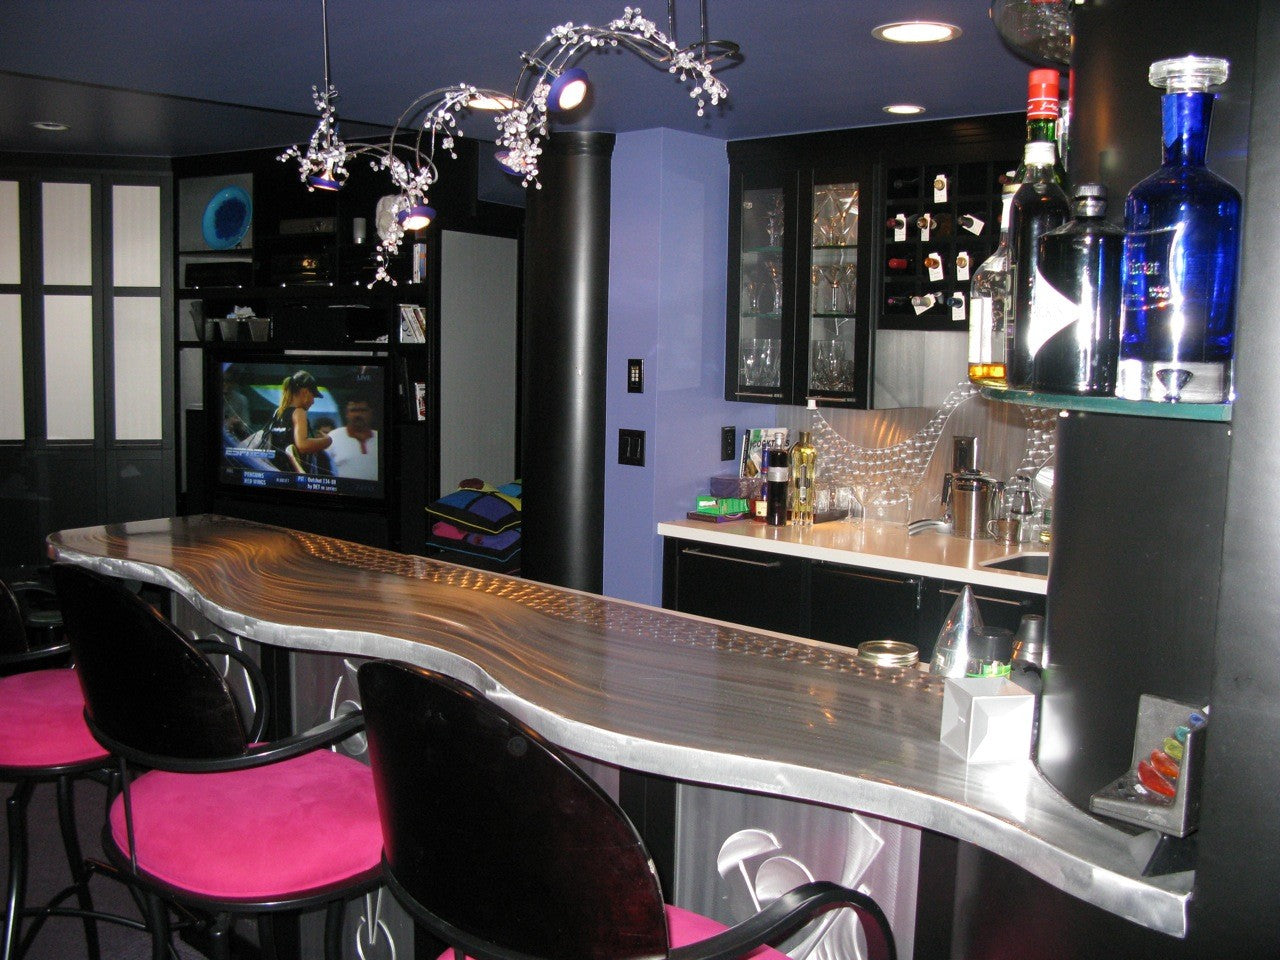 house-ideas-perfect-contemporary-home-bar-design-with-stainless-steel-bar-counter-and-pink-bar-stool-with-swivel-bucket-seat